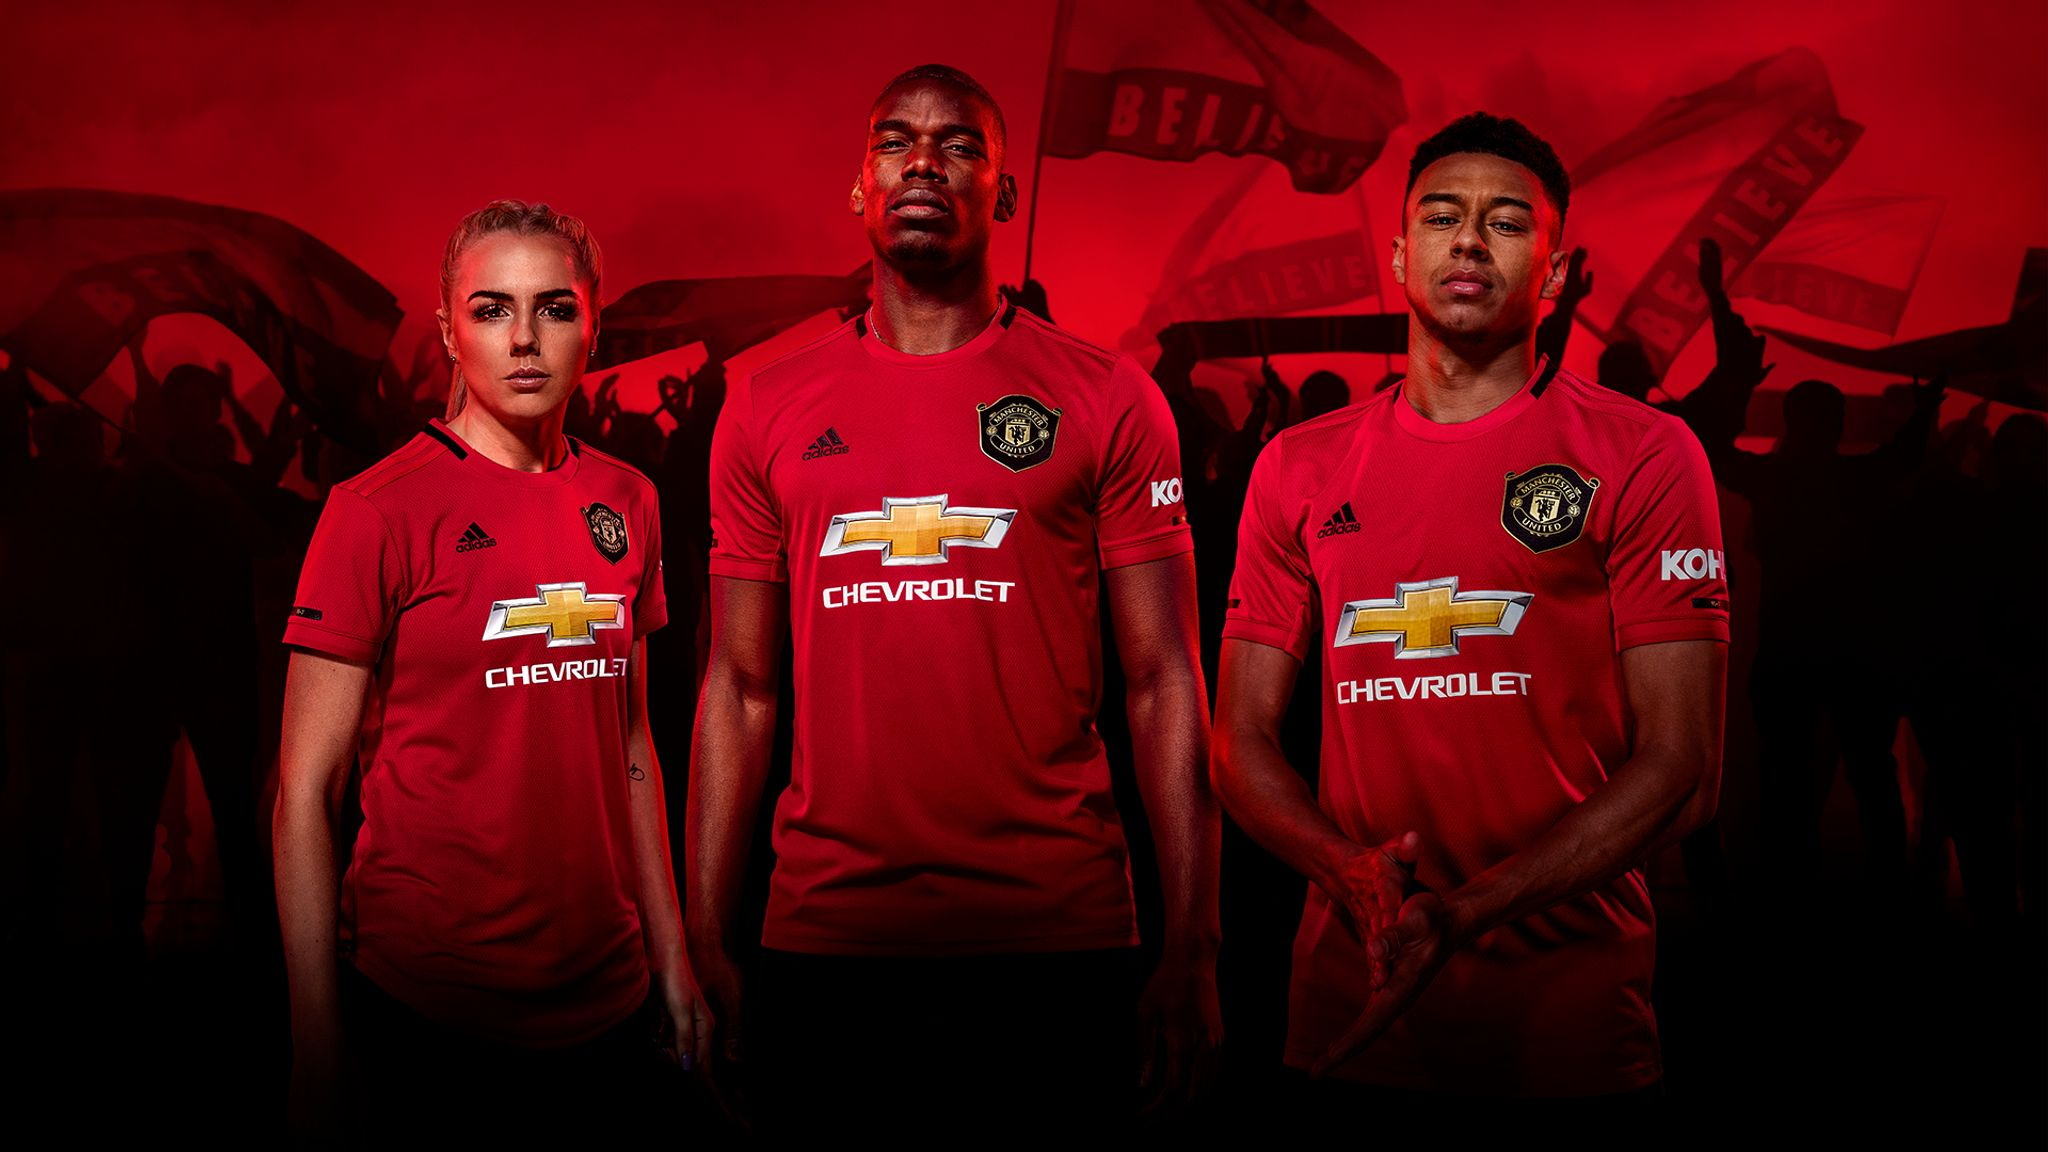 a2c69cf72 New Premier League kits for the 2019/20 season | Football News | Sky Sports